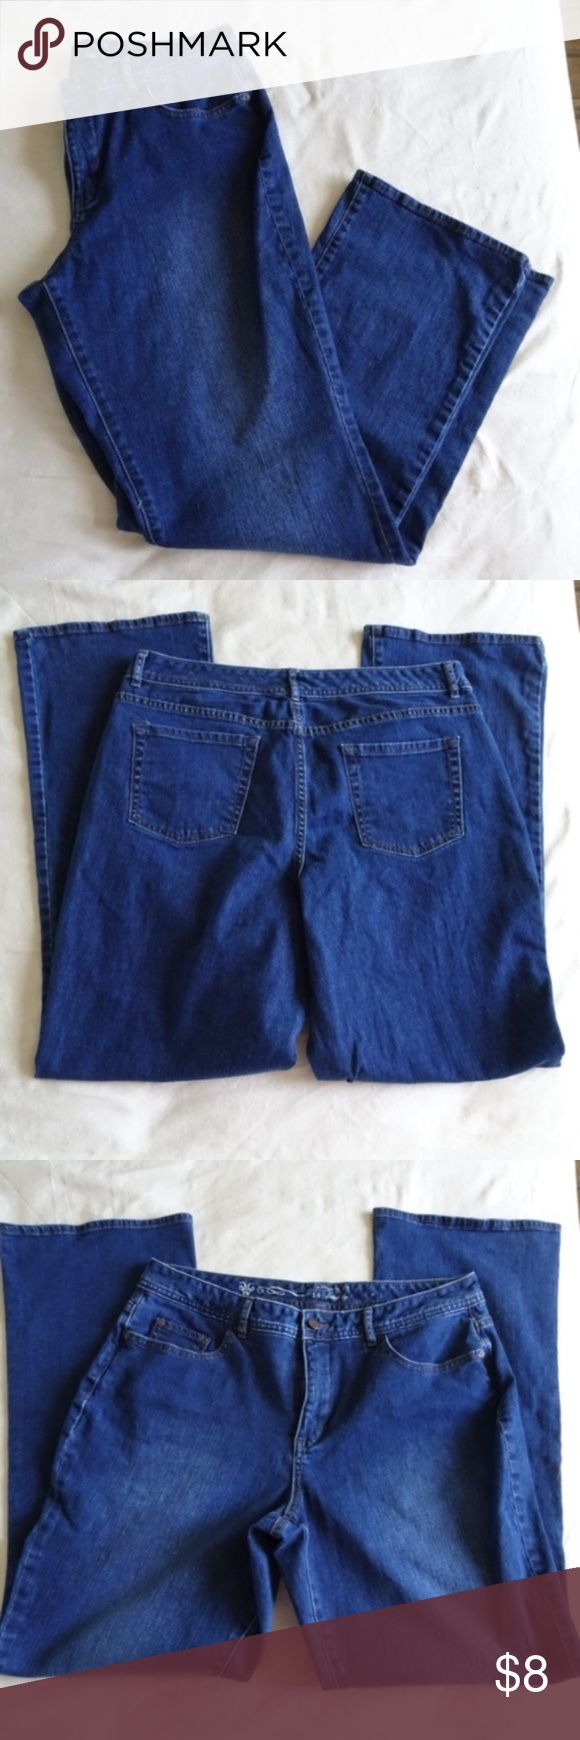 Worthington Natural Fit Bootcut Leg Jeans Price Drop Excellent condition. Waist and inseam measurements in pictures 5 pockets  zip fly  All items come from a non-smoking home Worthington Jeans Boot Cut